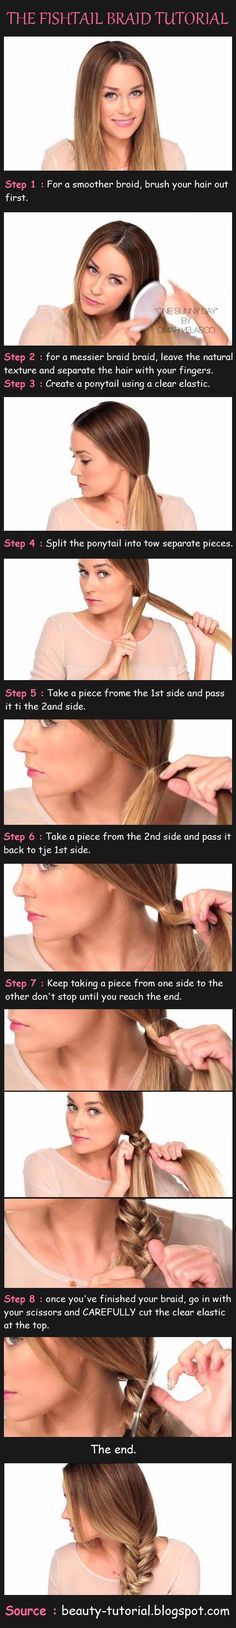 The Fishtail Braid Tutorial- Simple, easy to follow instructions~Really! Made it simple to learn...even the morning before work